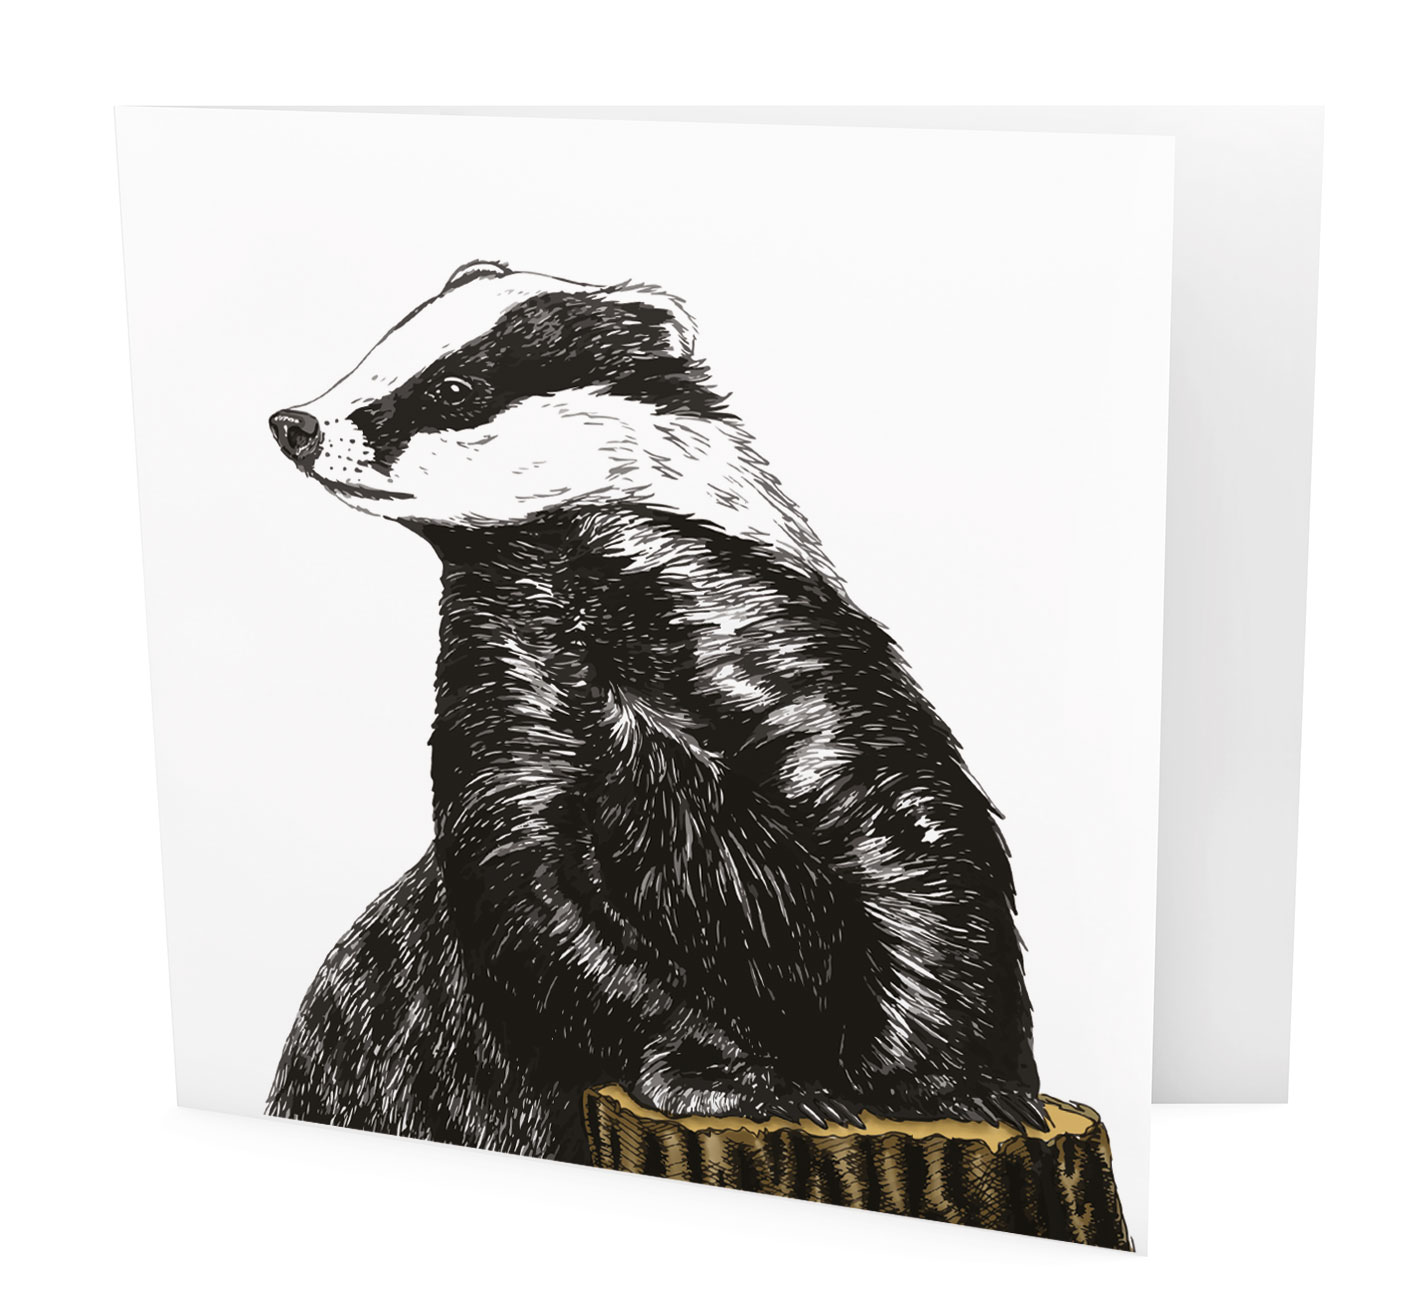 BW05-Badger.jpg